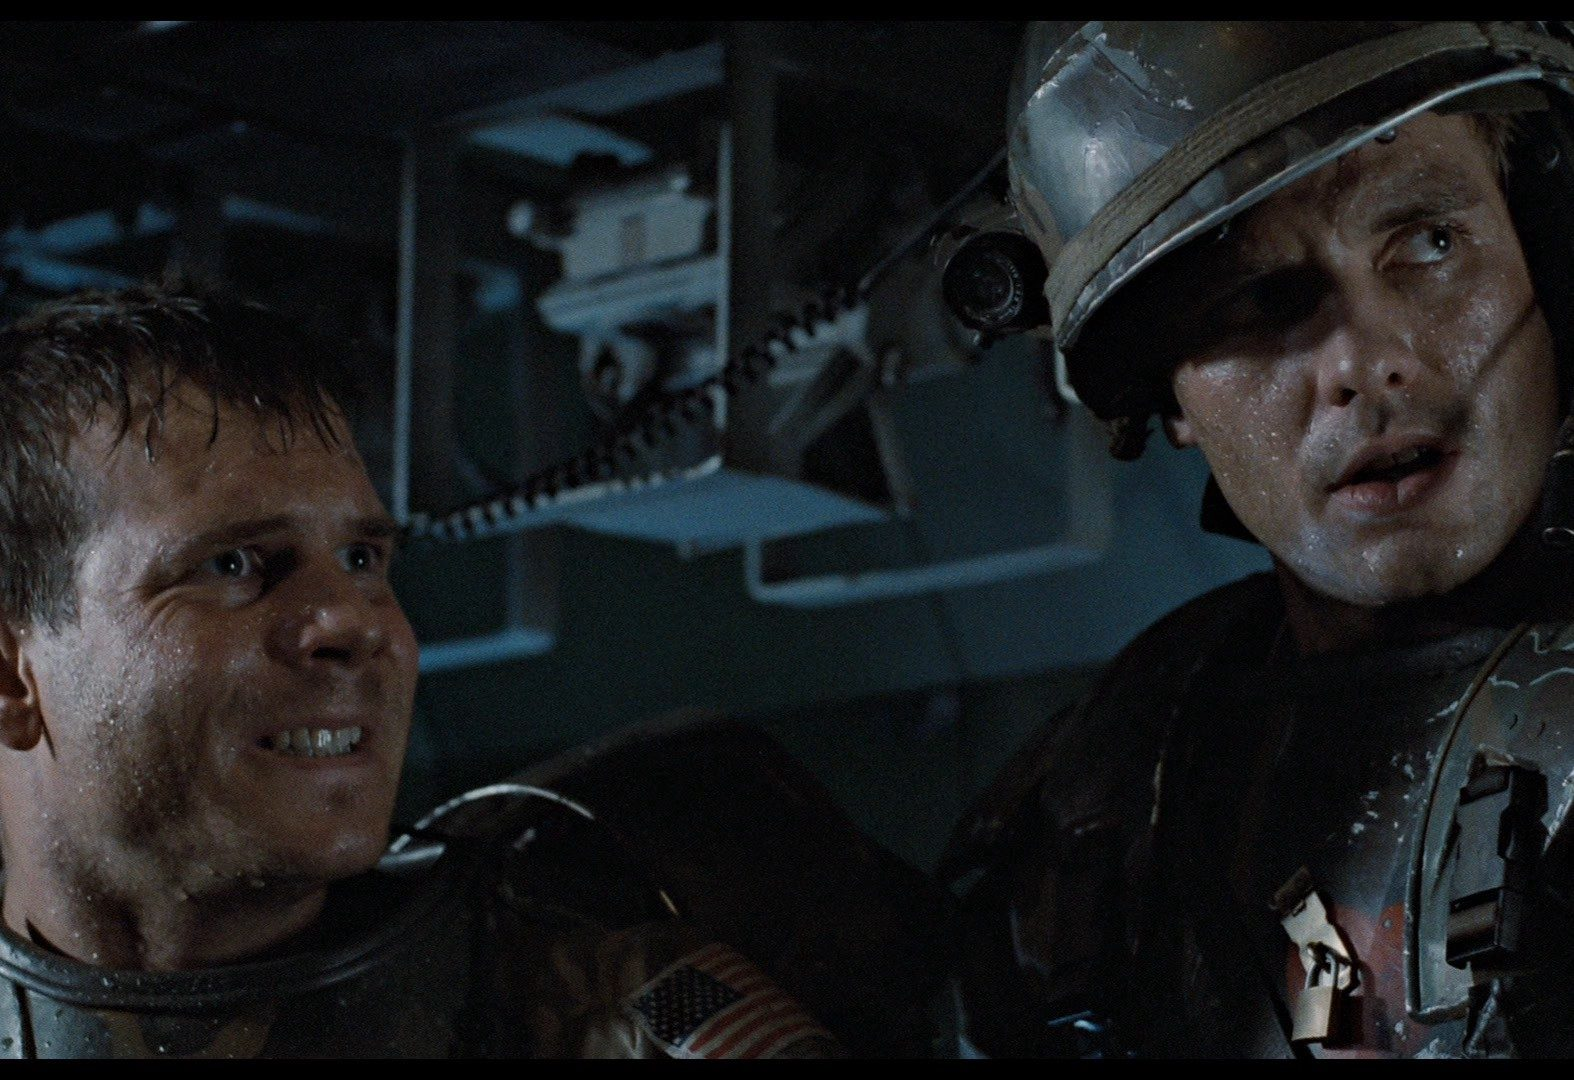 1S7wN56WyS0Am4g2O3xhbxg e1622449929778 20 Things You Never Knew About Bill Paxton